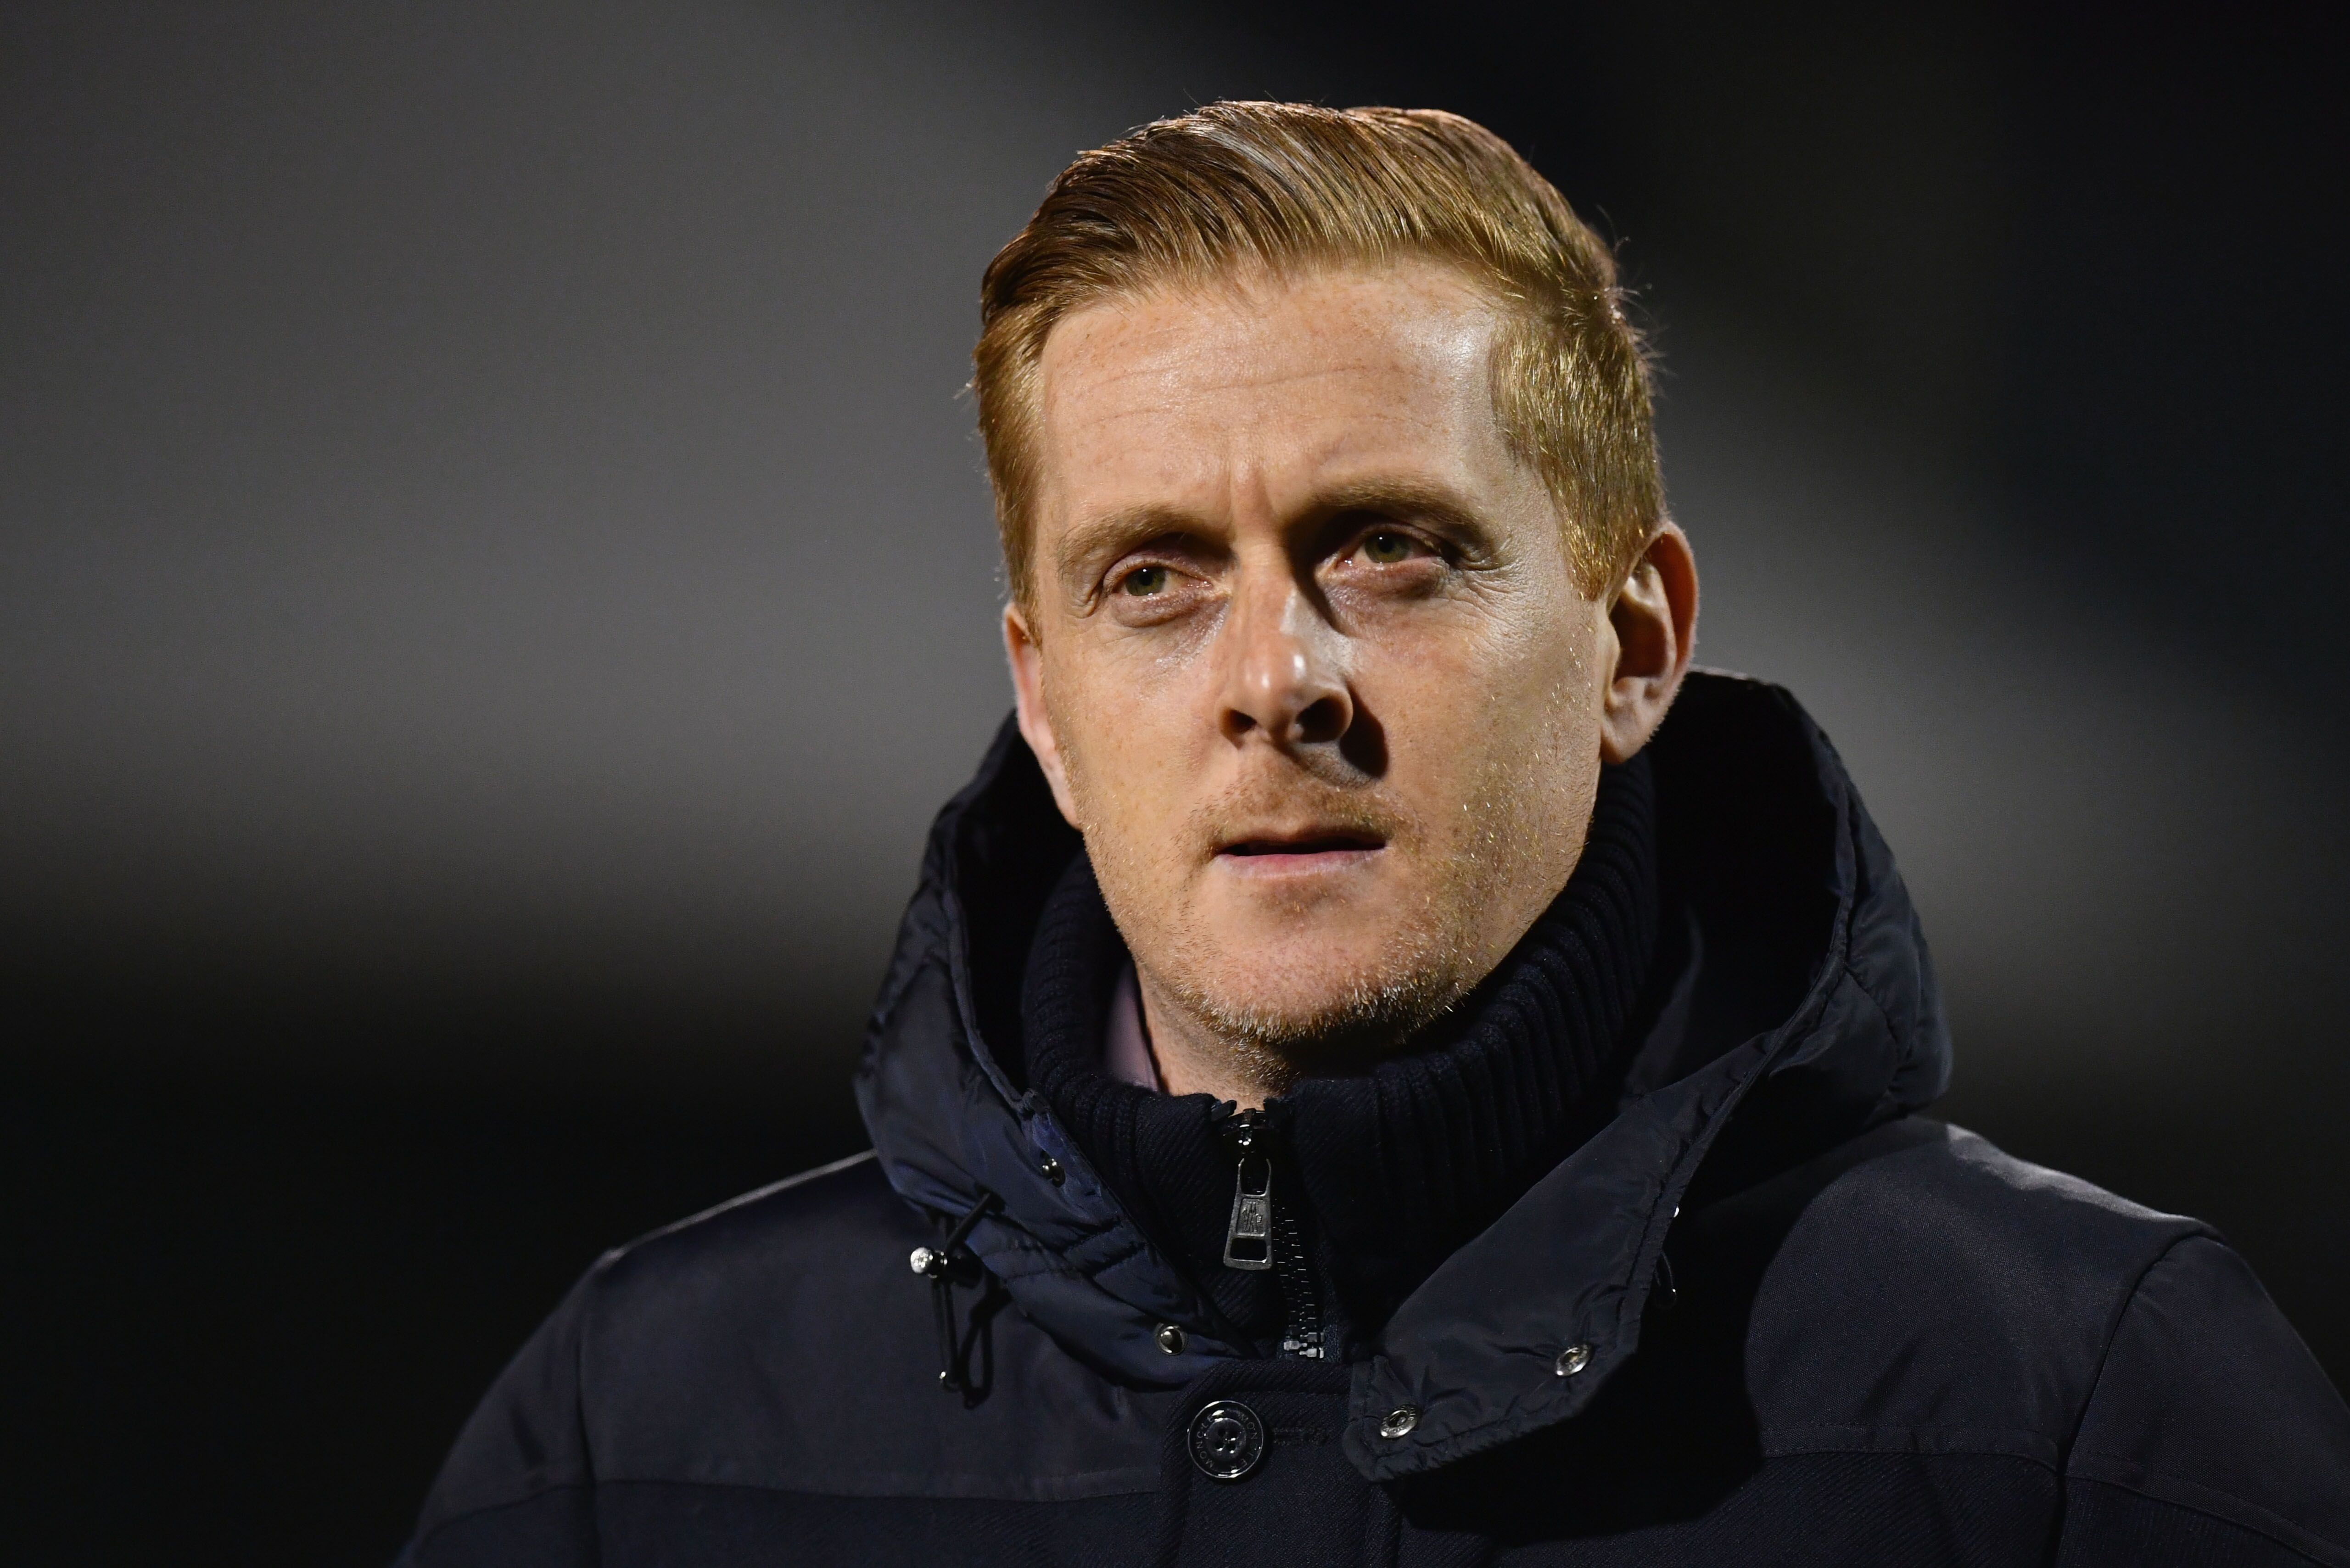 Sky Sports praises Boro display as Monk claims first competitive win